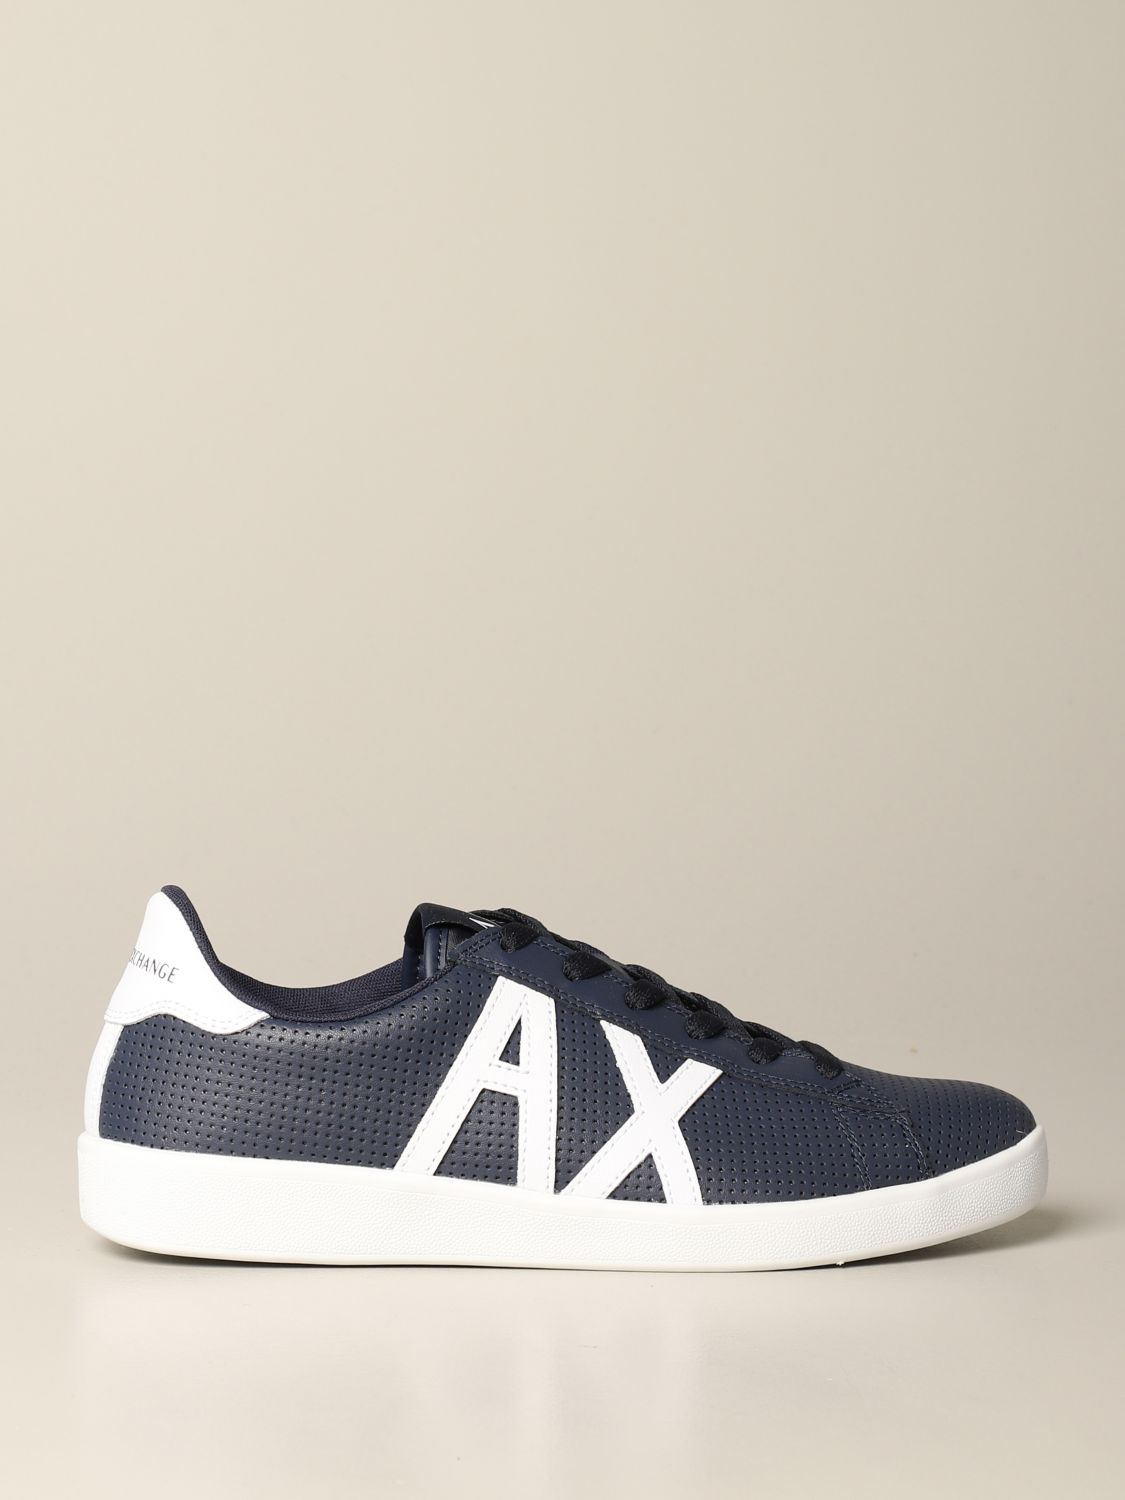 Sneakers Armani Exchange: Schuhe herren Armani Exchange blau 1